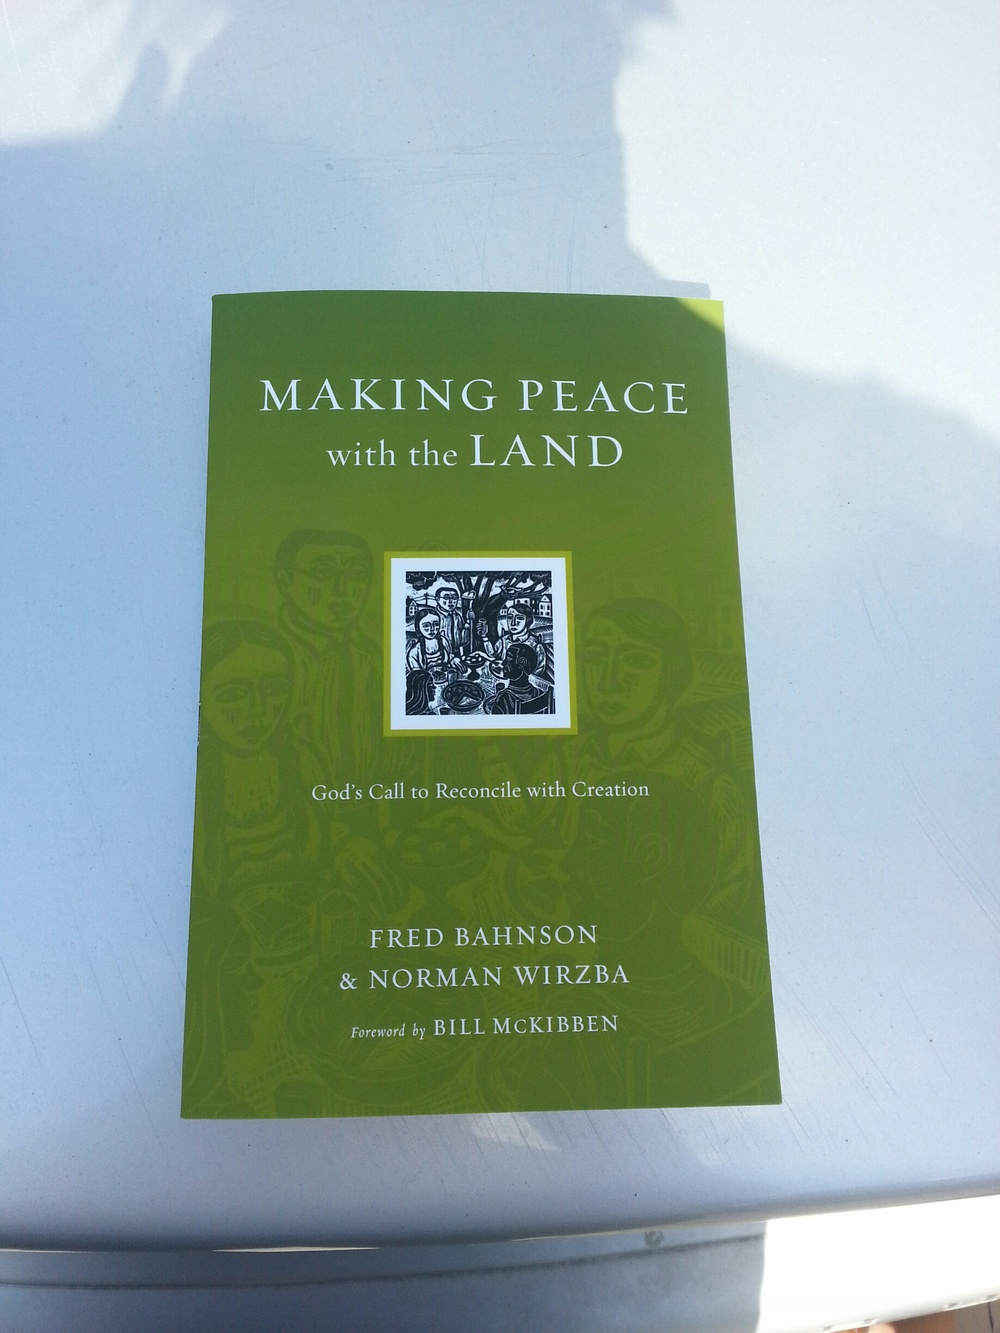 Making Peace With the Land can be found on all major bookstore websites including amazon.com